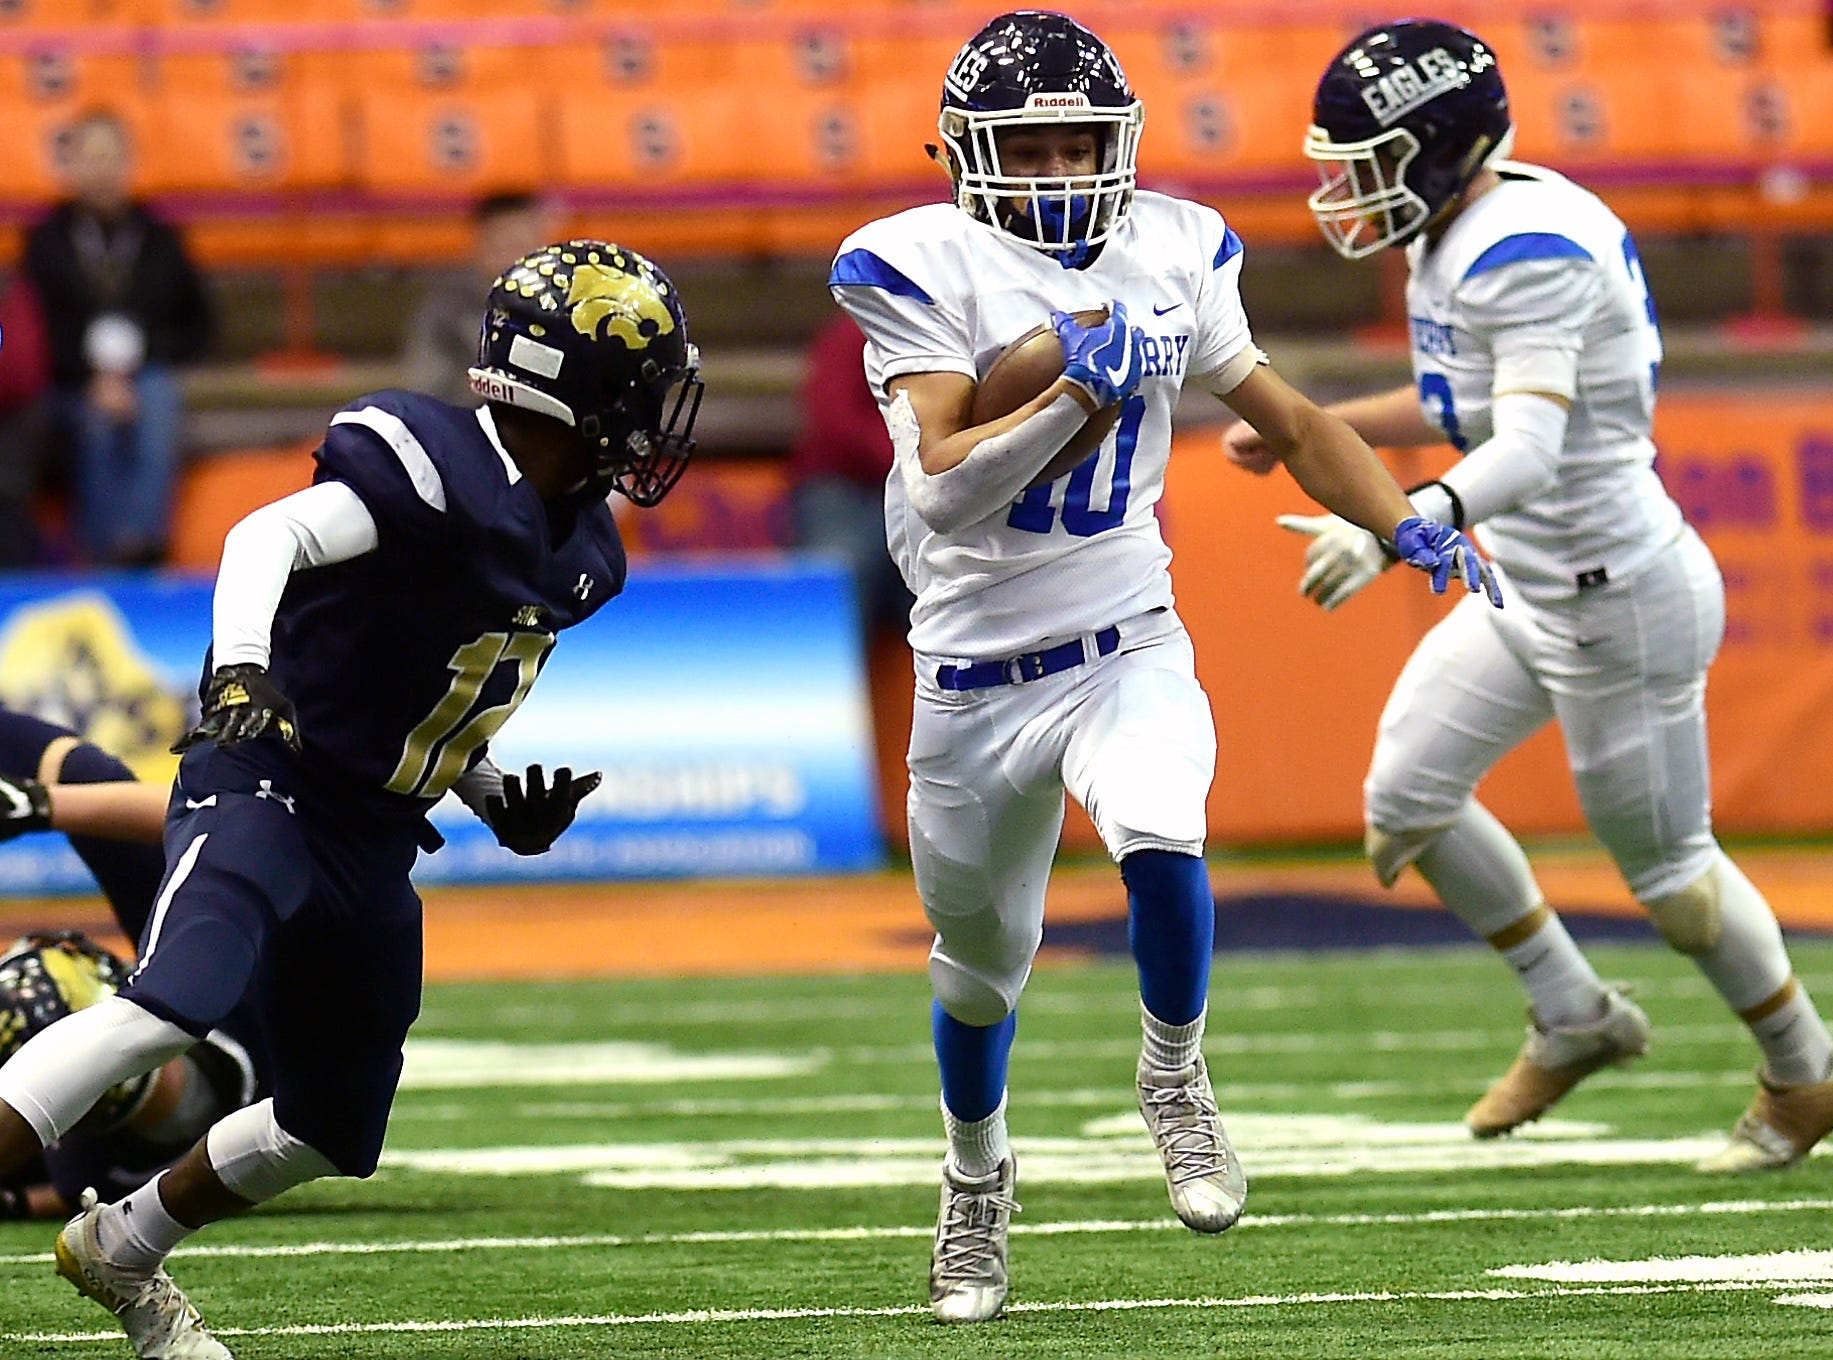 Emilio Nolasco (10) of Dobb's Ferry runs during Susquehanna Valley vs. Dobbs Ferry, Class C NYSPHSAA state football final, Carrier Dome, Syracuse. Friday, November 23, 2018.